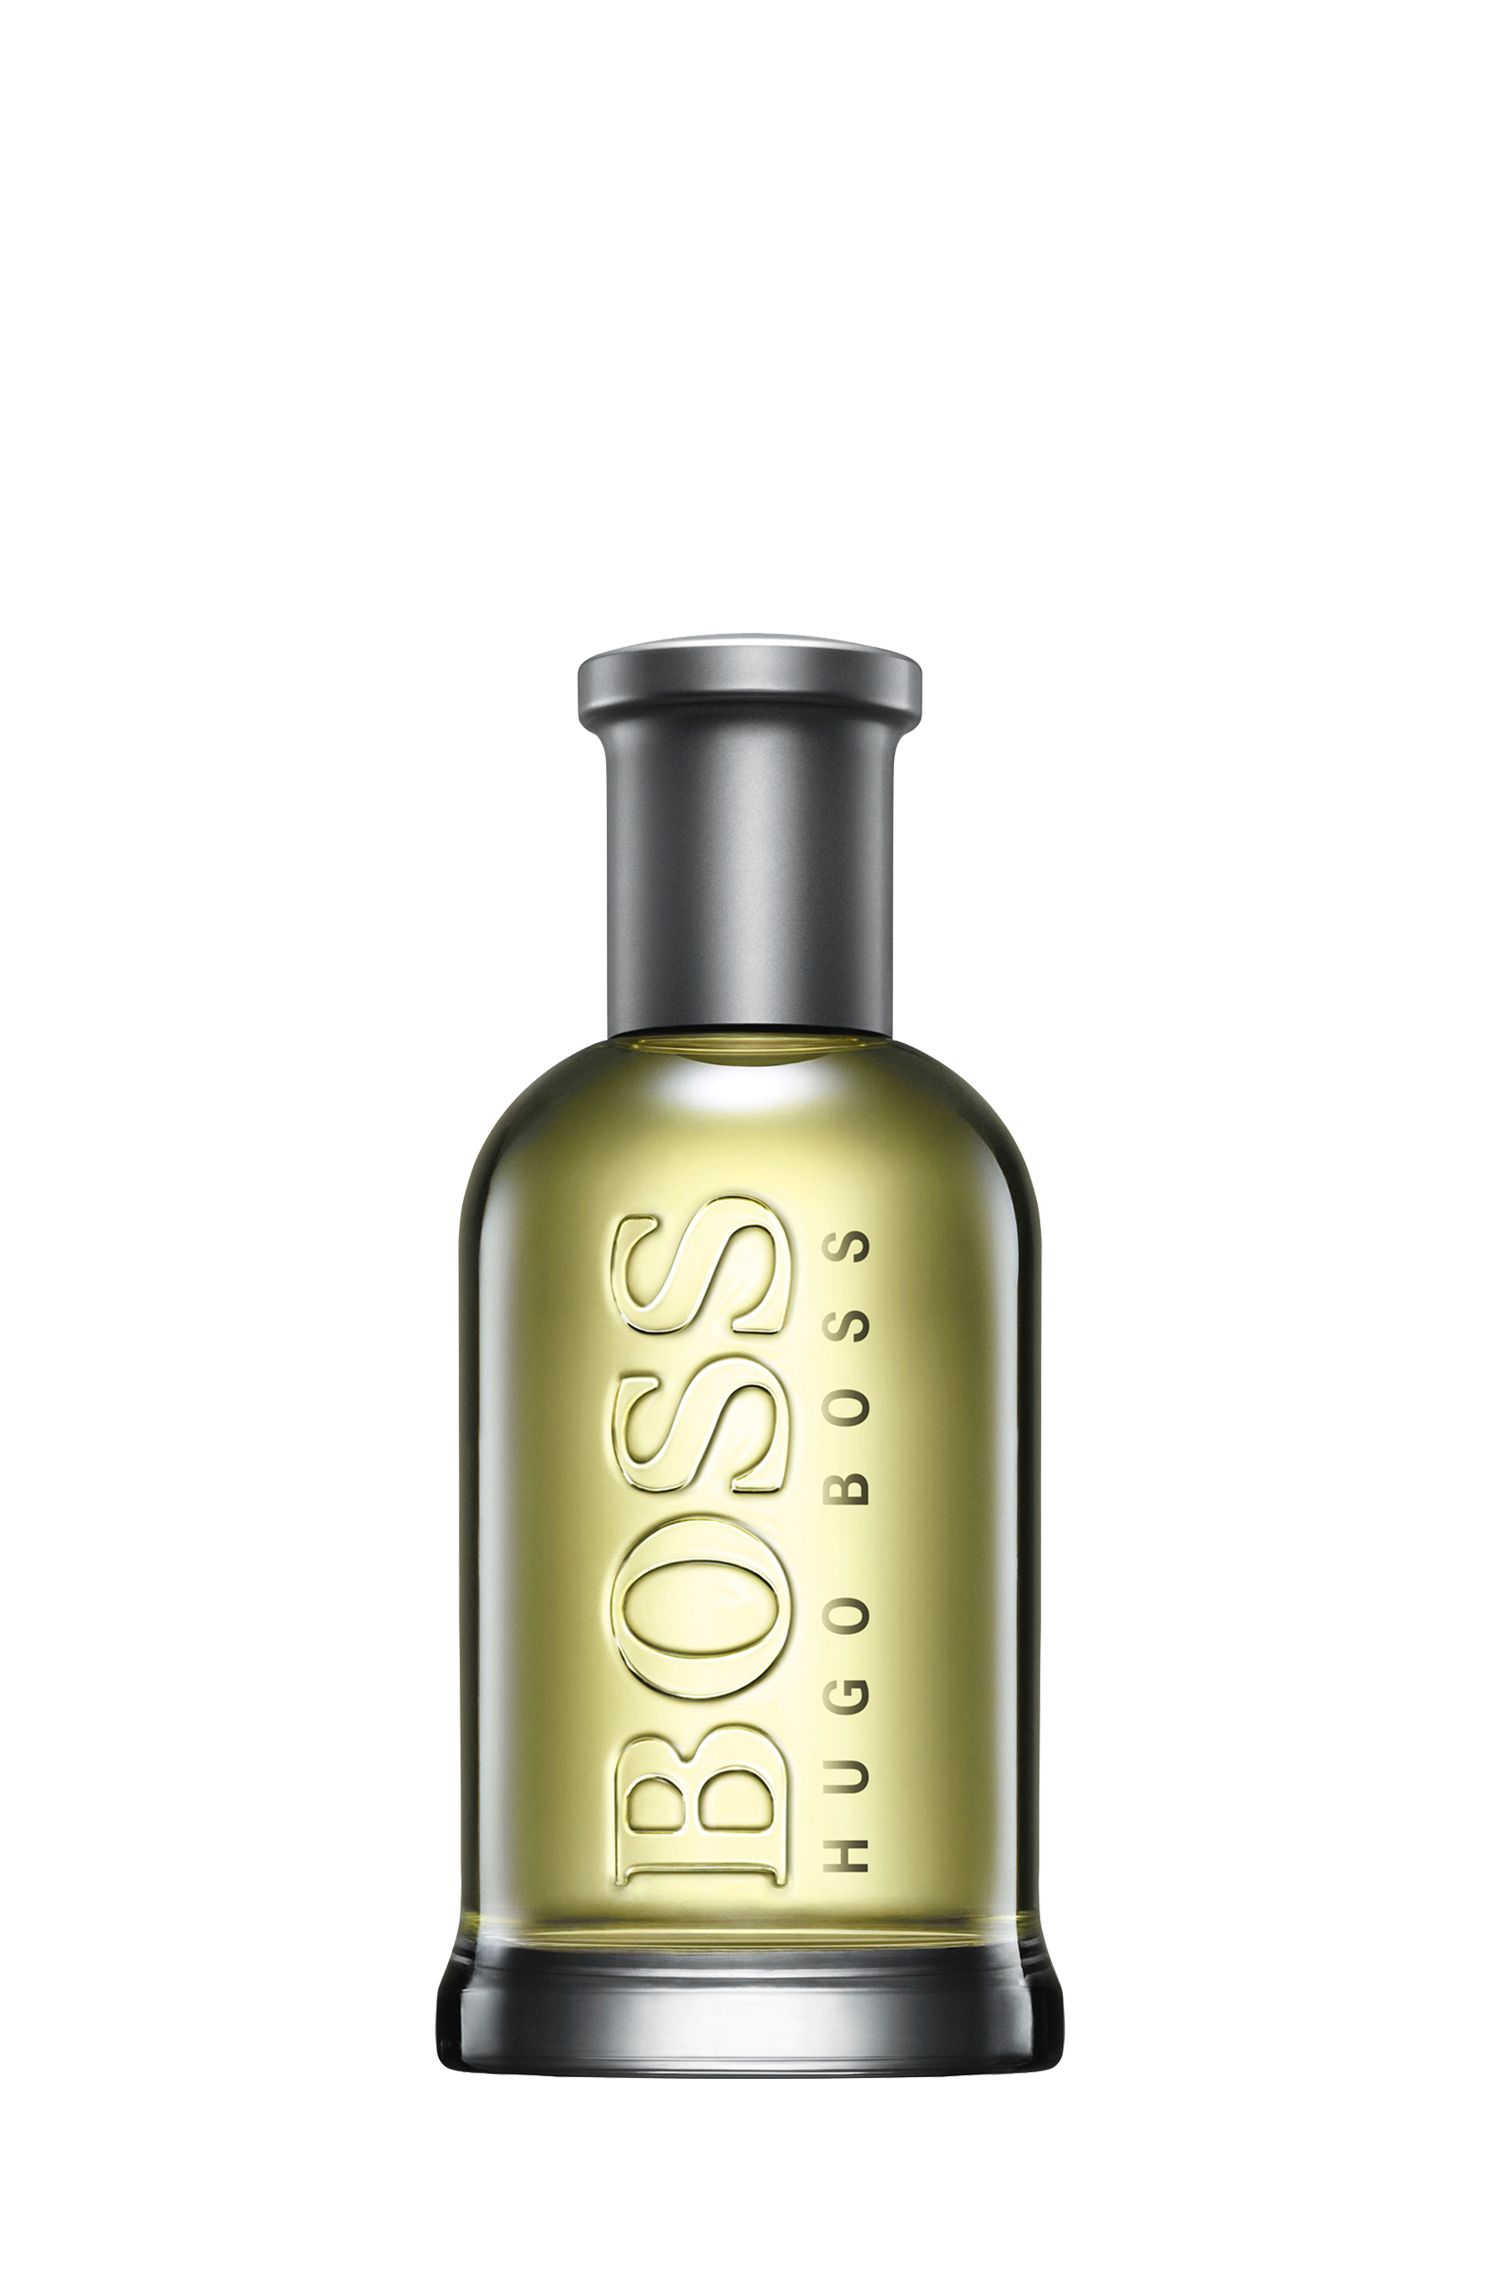 BOSS Bottled aftershave 50ml, Assorted-Pre-Pack